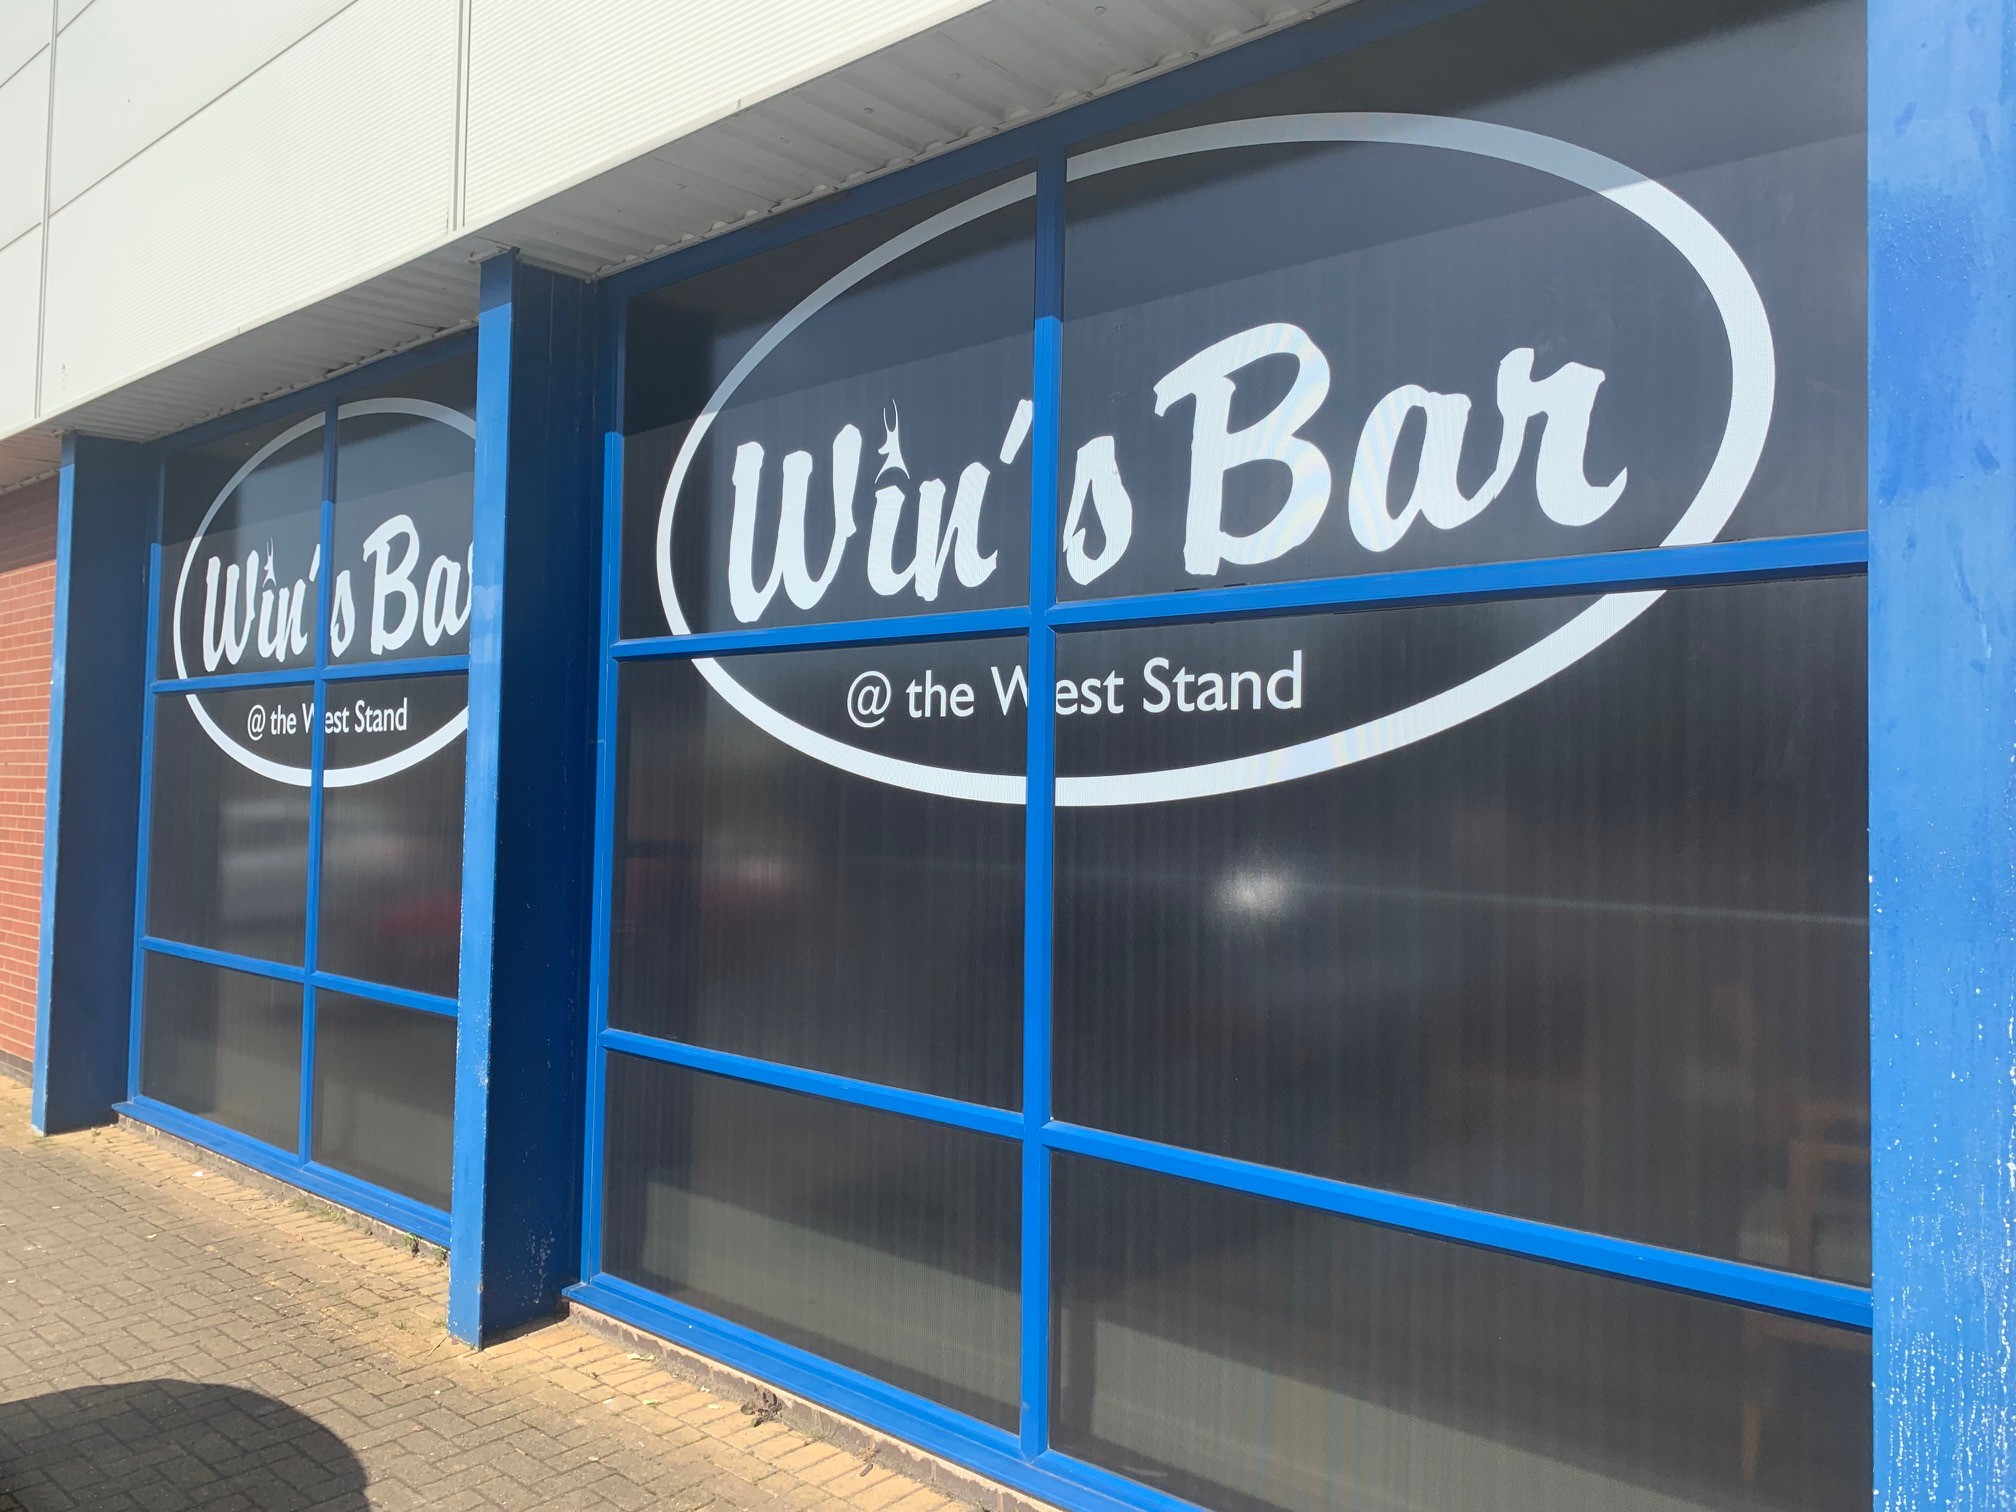 Dugout Bar is being renamed 'Win's Bar'